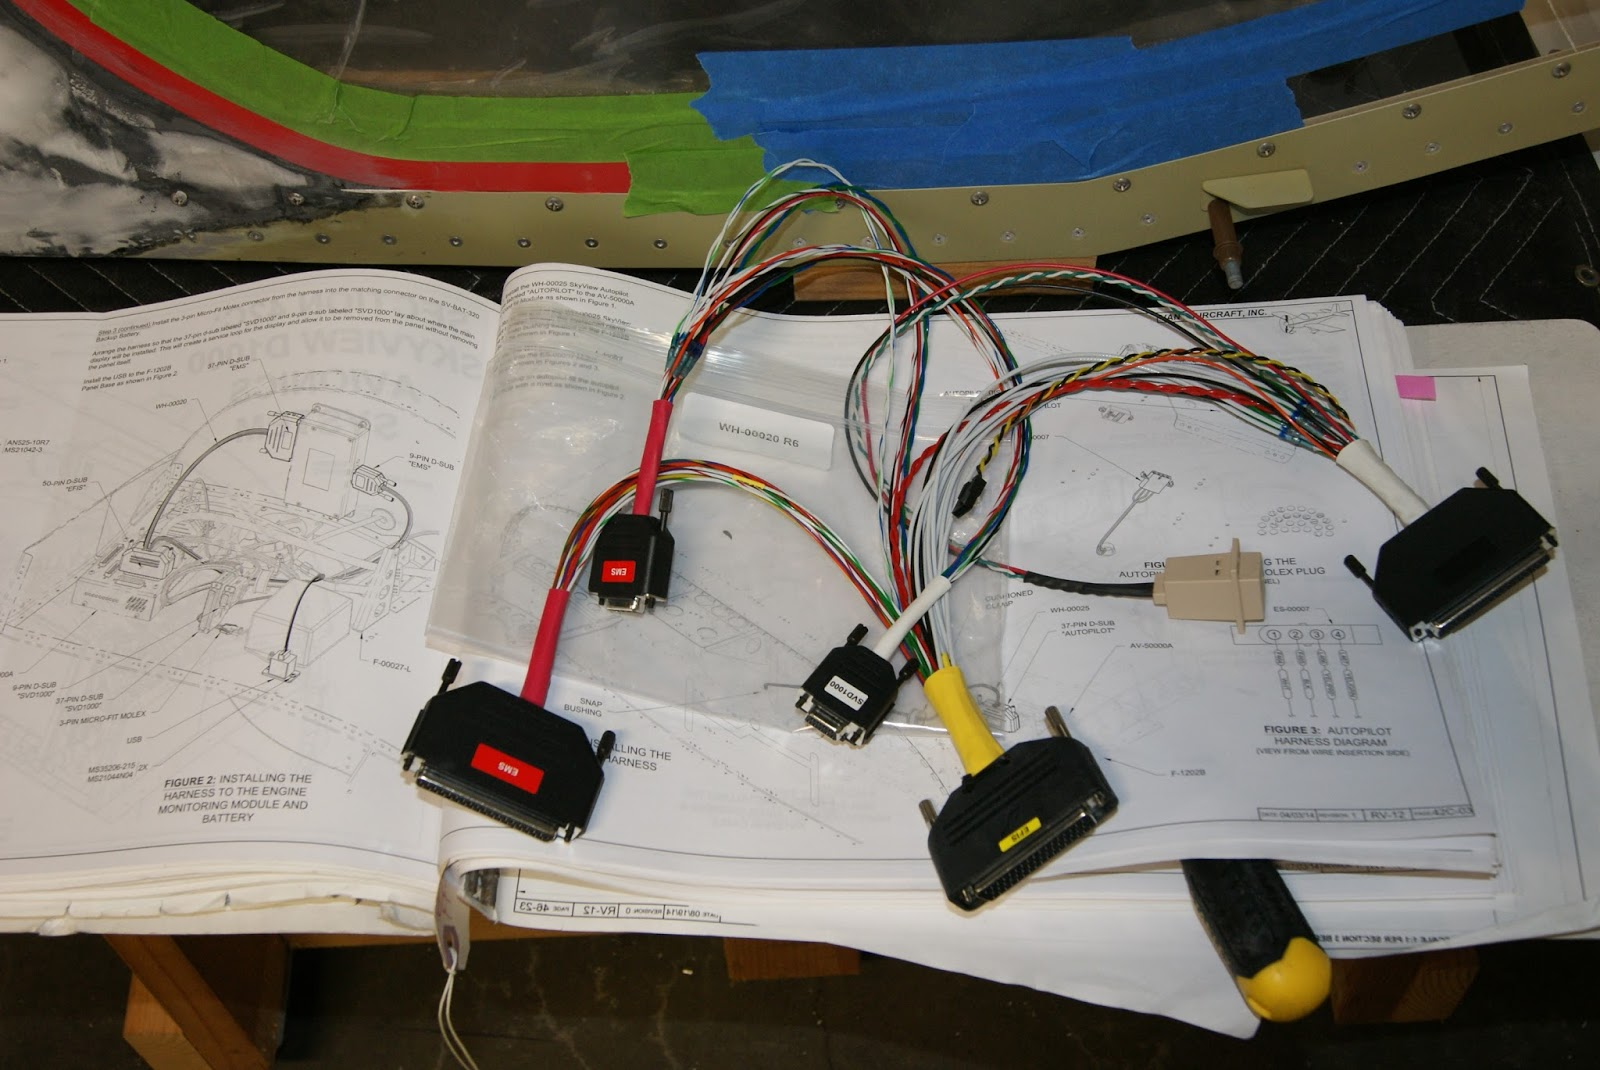 DOG Aviation John's RV-12 Blog: More Wiring Installed & ADS-B ... on wire strap, wire bushing, wire tape,